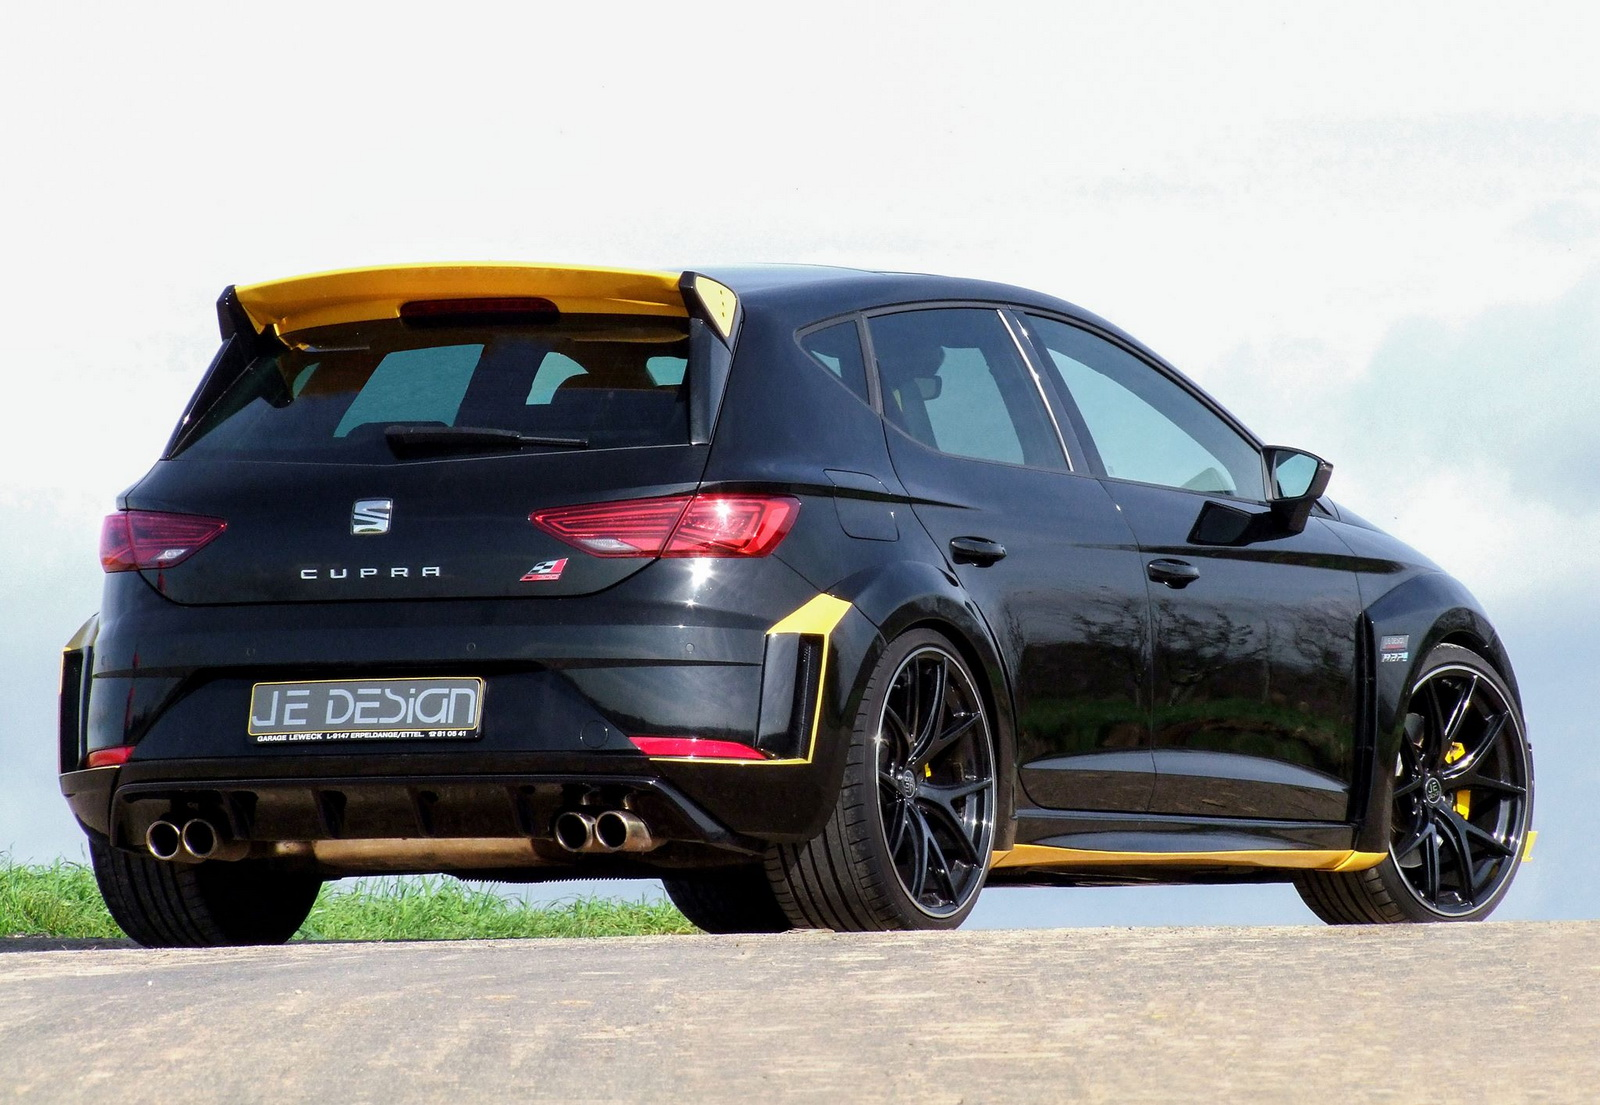 Seat Leon Cupra facelift by je design (8)